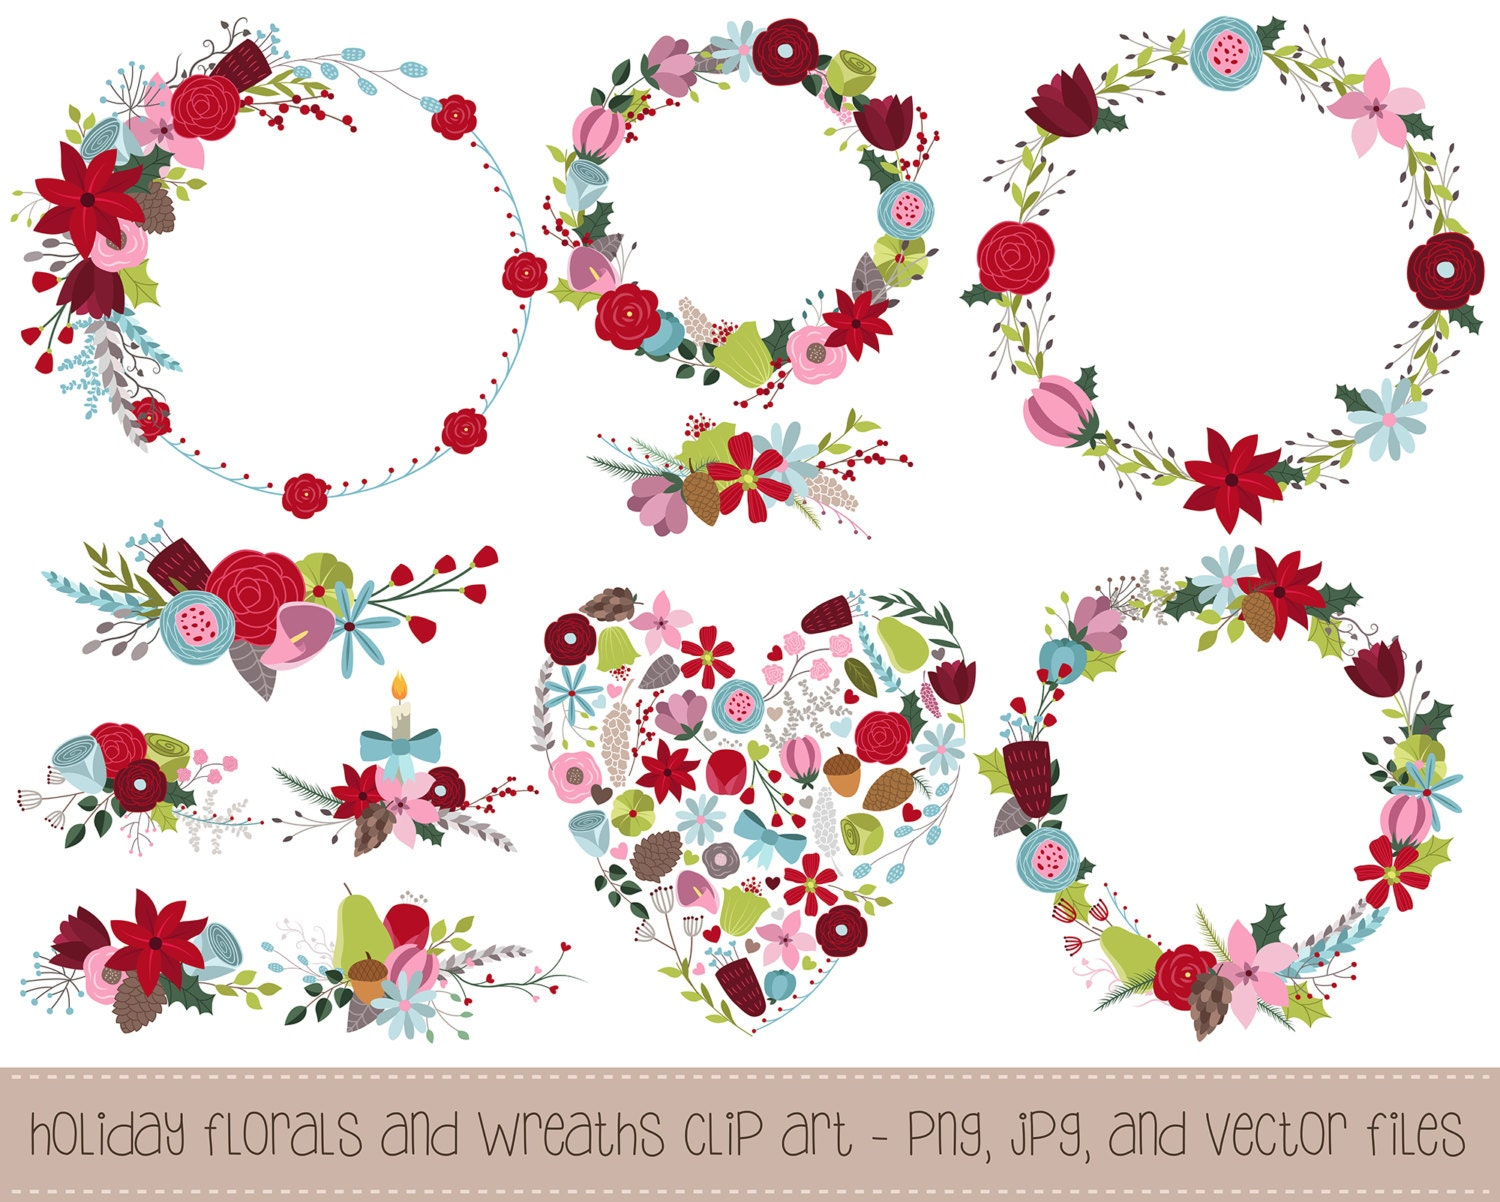 winter florals and holiday wreaths clipart 11 hand drawn png